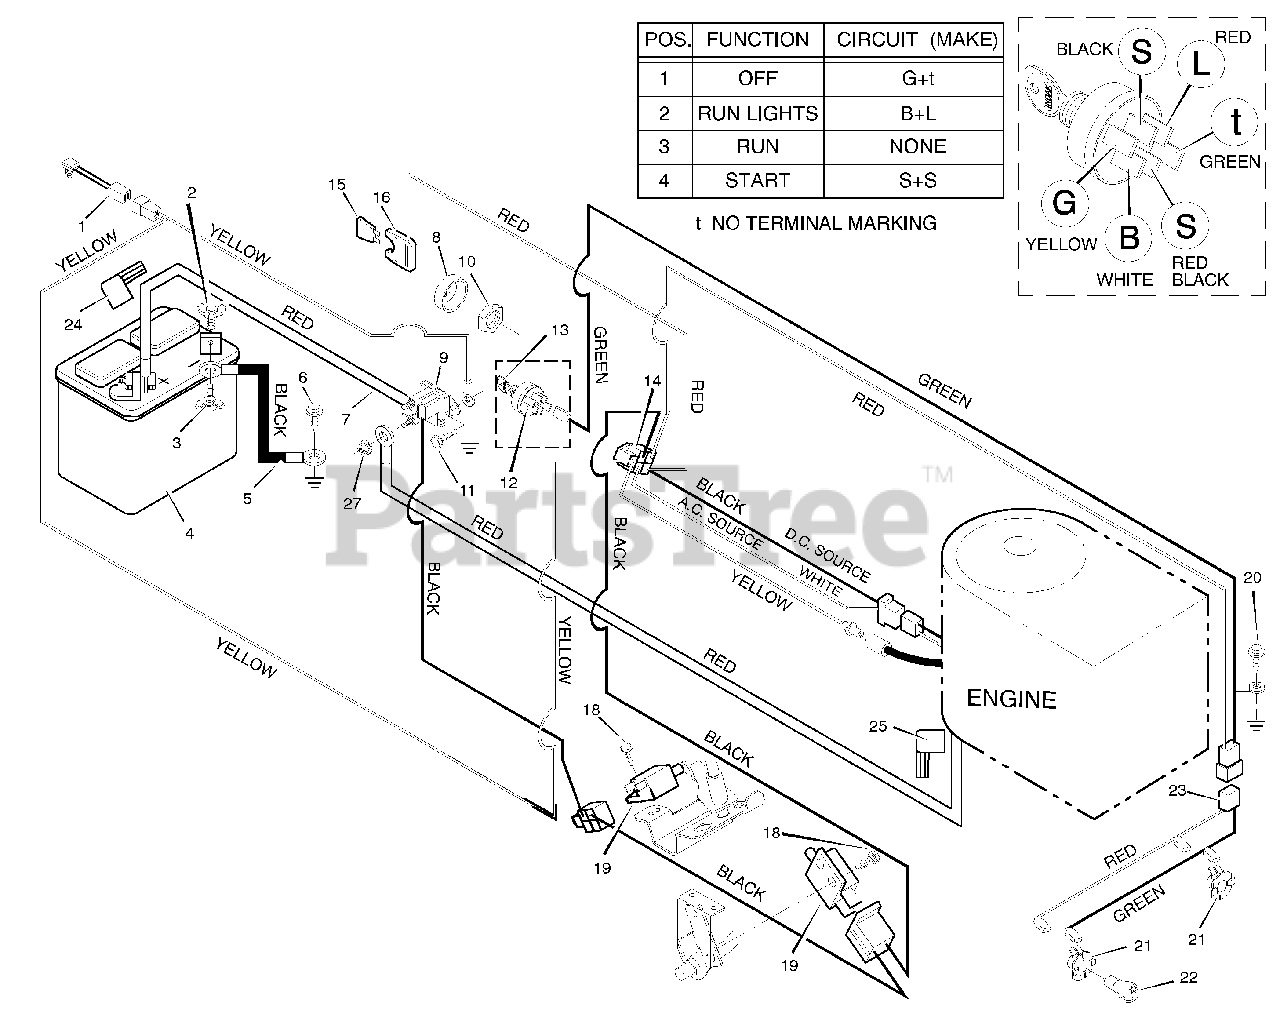 murray 42544x8c ignition wiring diagram murray lawn mower schematics e24 wiring diagram  murray lawn mower schematics e24